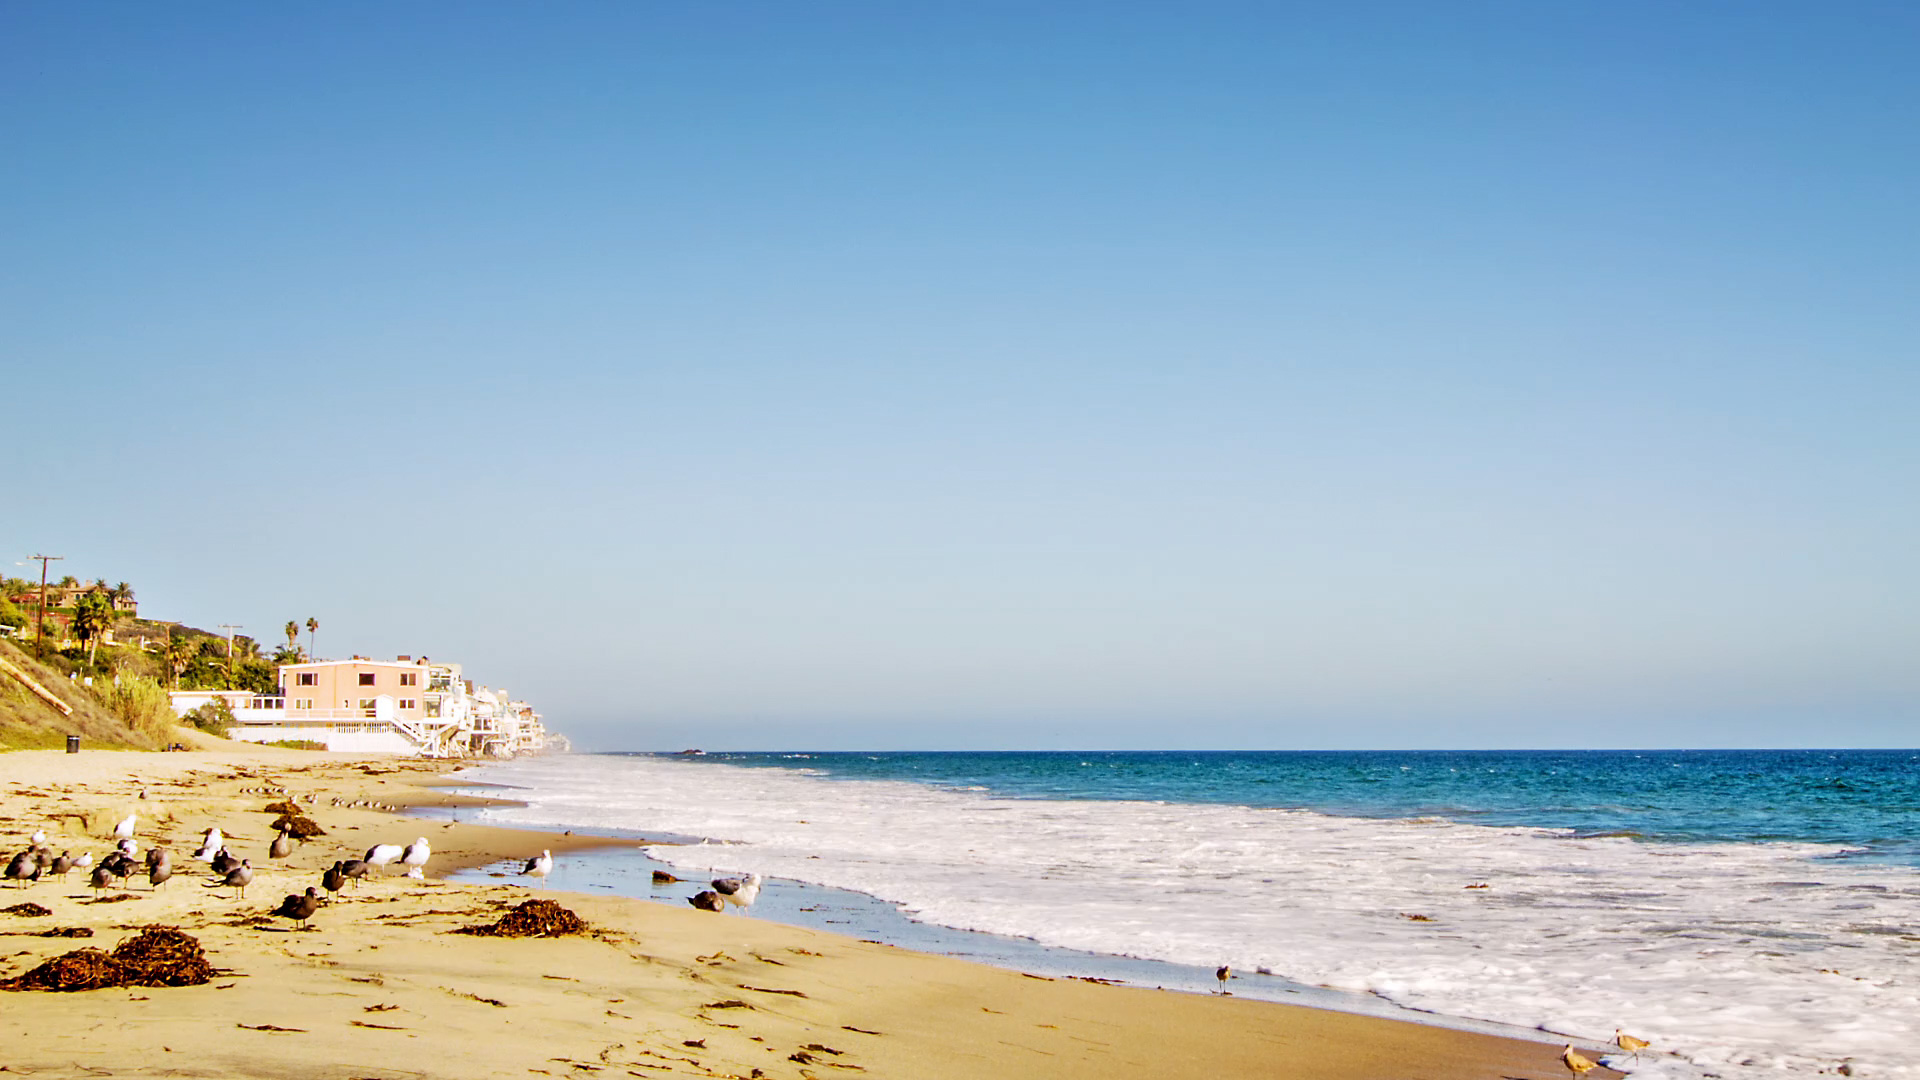 Southern California is a beachgoer's paradise. But which beaches top our list?